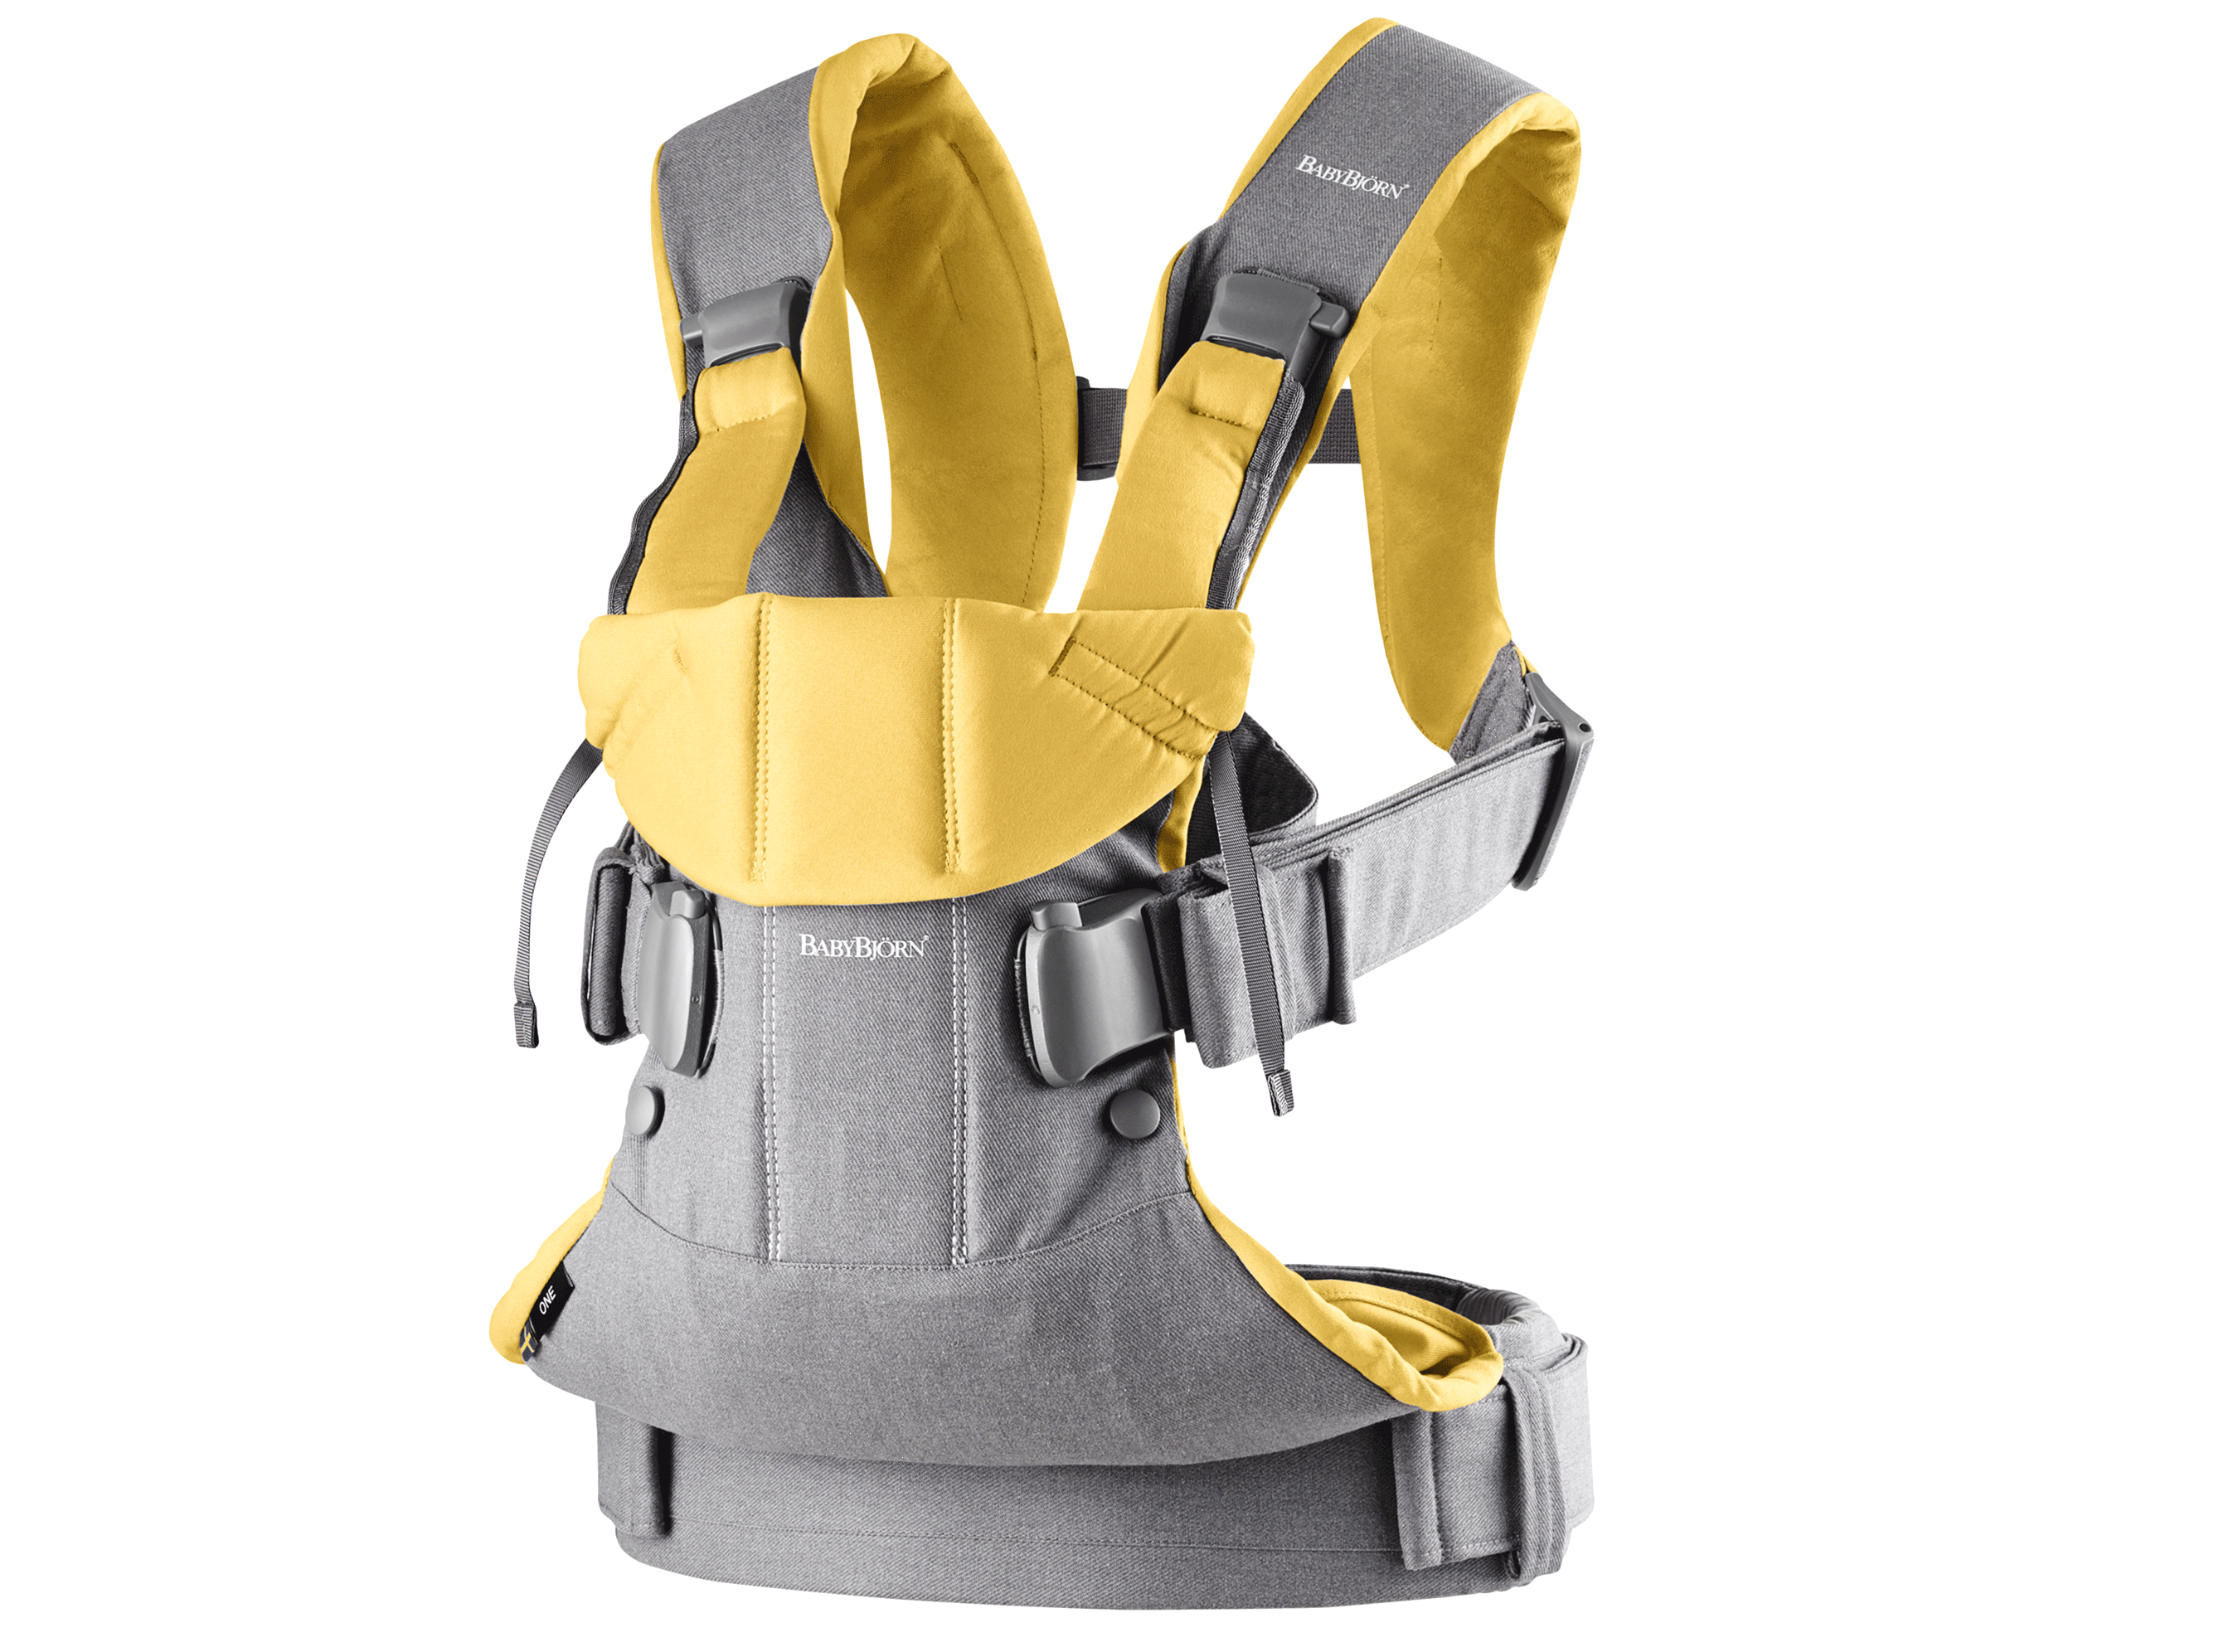 BABYBJÖRN Baby Carrier One, Grey/Yellow, Cotton Mix – Baby Power Collection